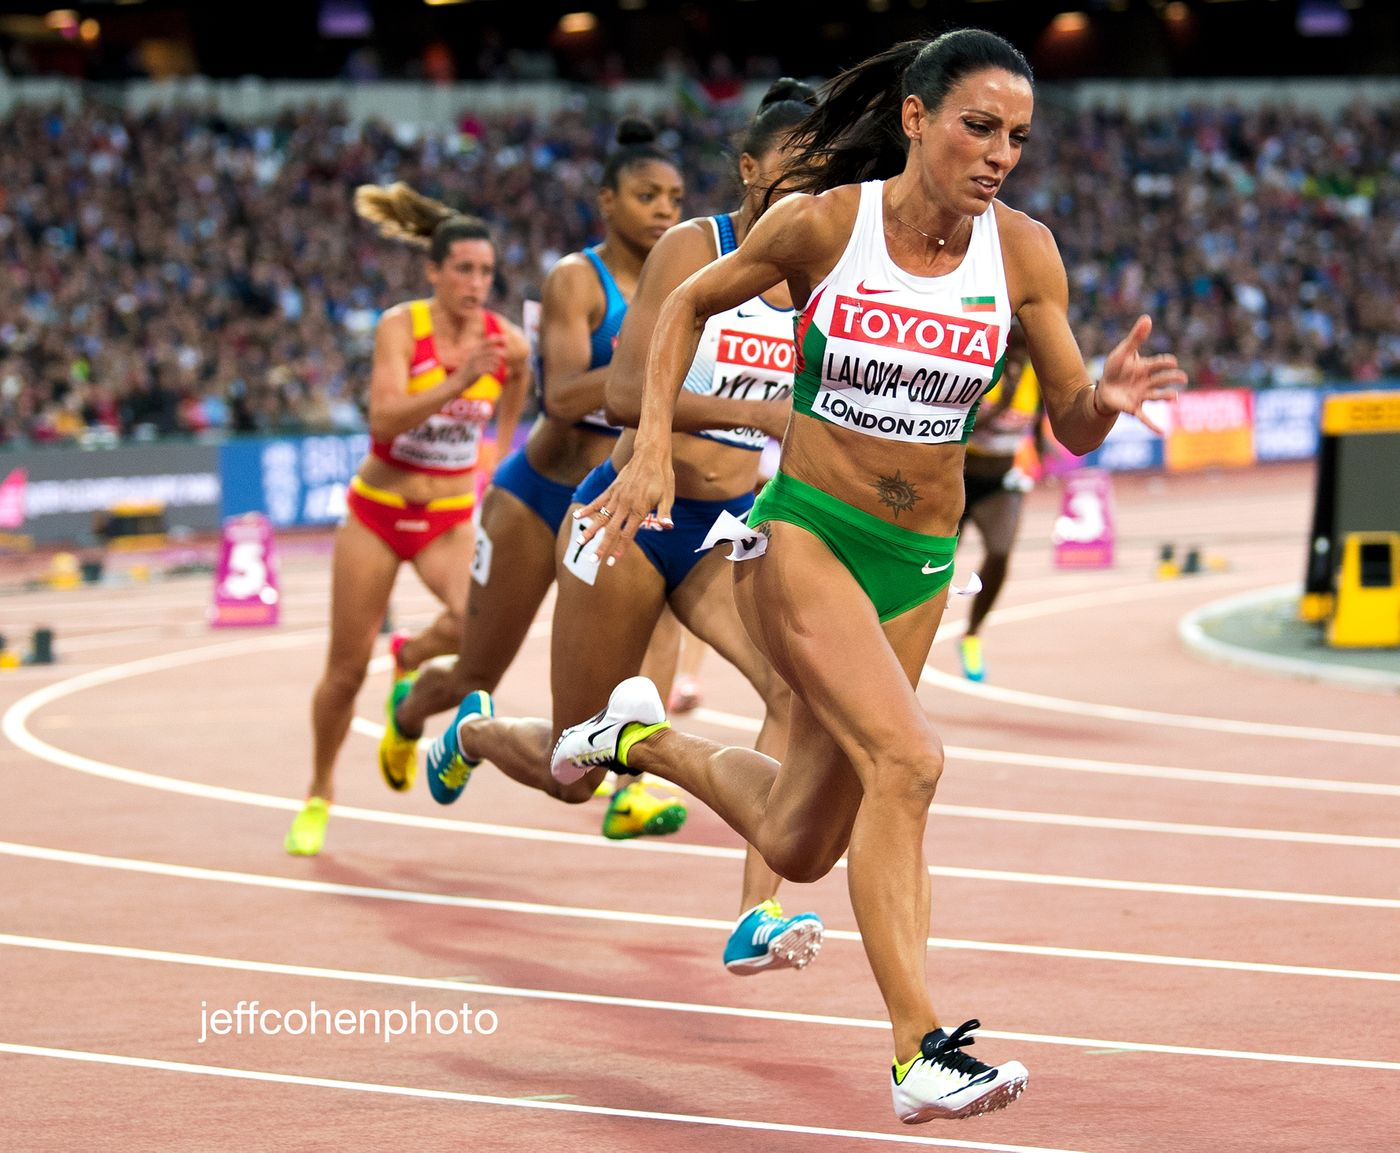 2017-IAAF-WC-London-night-5-lalova-200m-476-jeff-cohen-photo--web.jpg